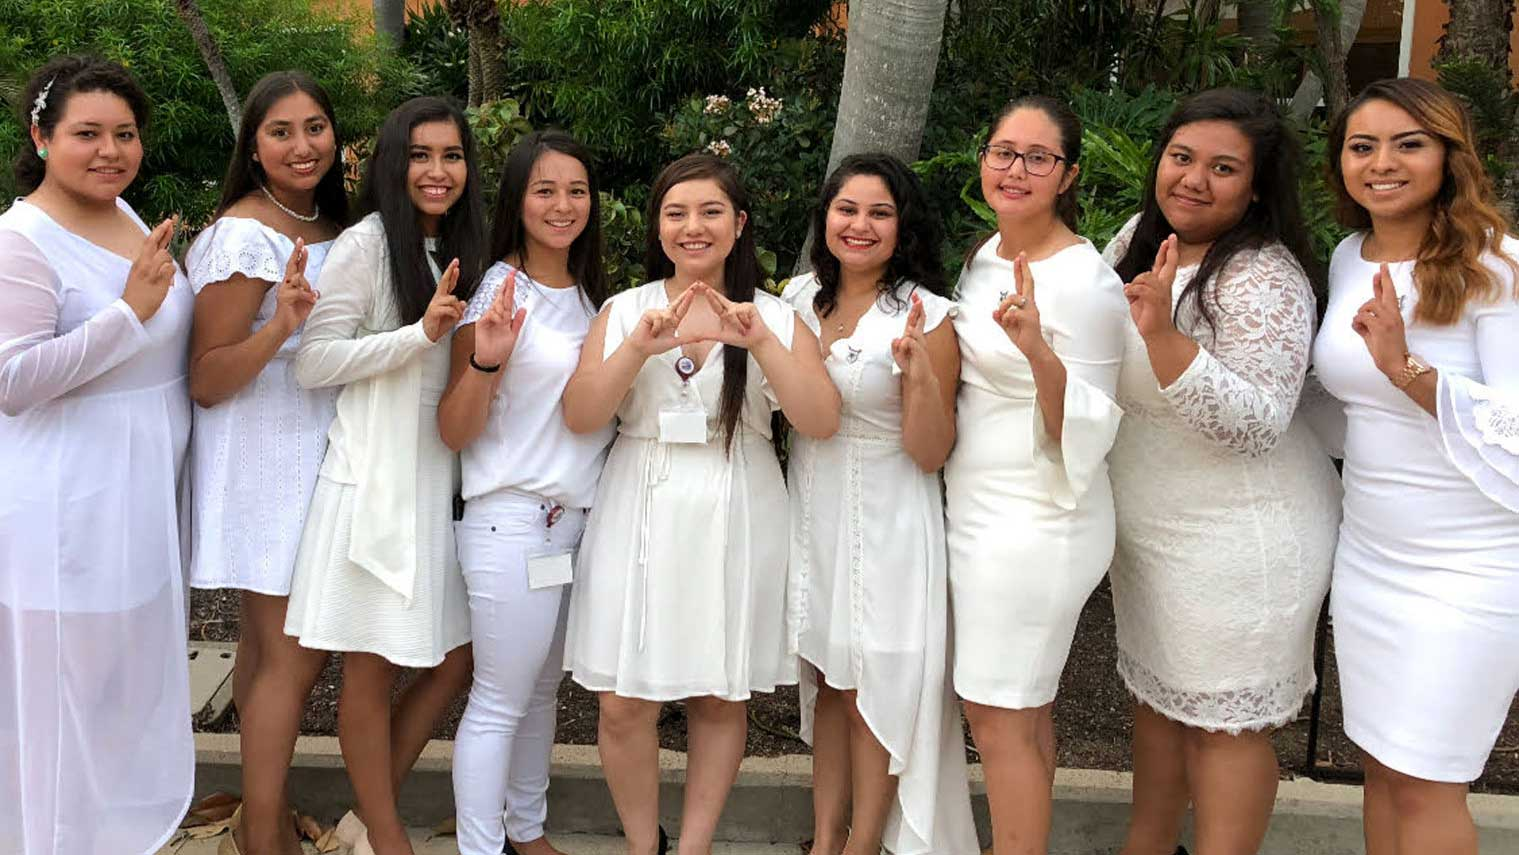 Members of Delta Xi Nu at the University of Nebraska-Lincoln